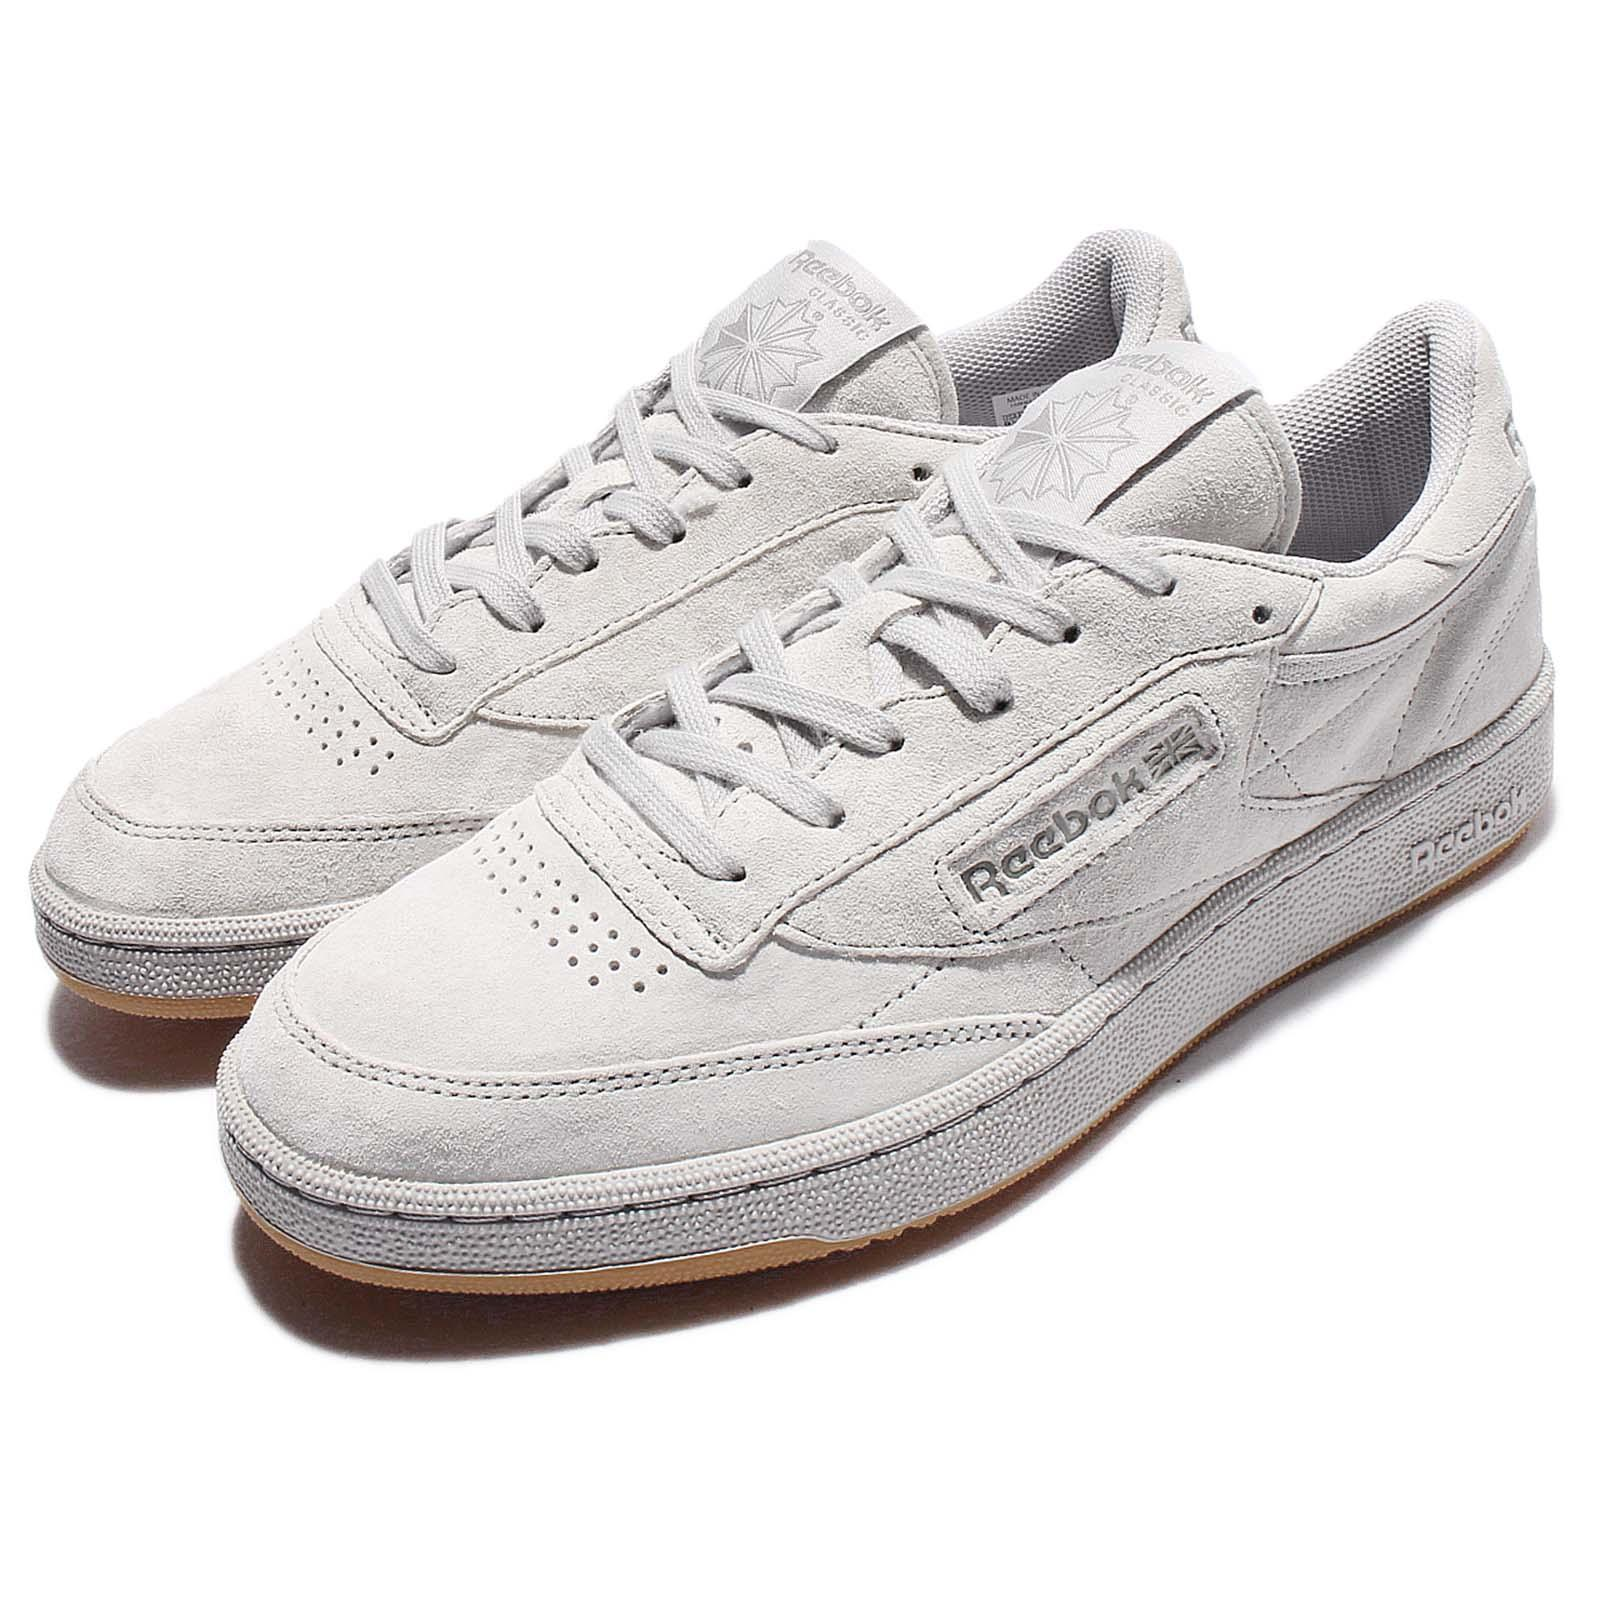 reebok club c 85 tg suede grey gum men classic shoes. Black Bedroom Furniture Sets. Home Design Ideas